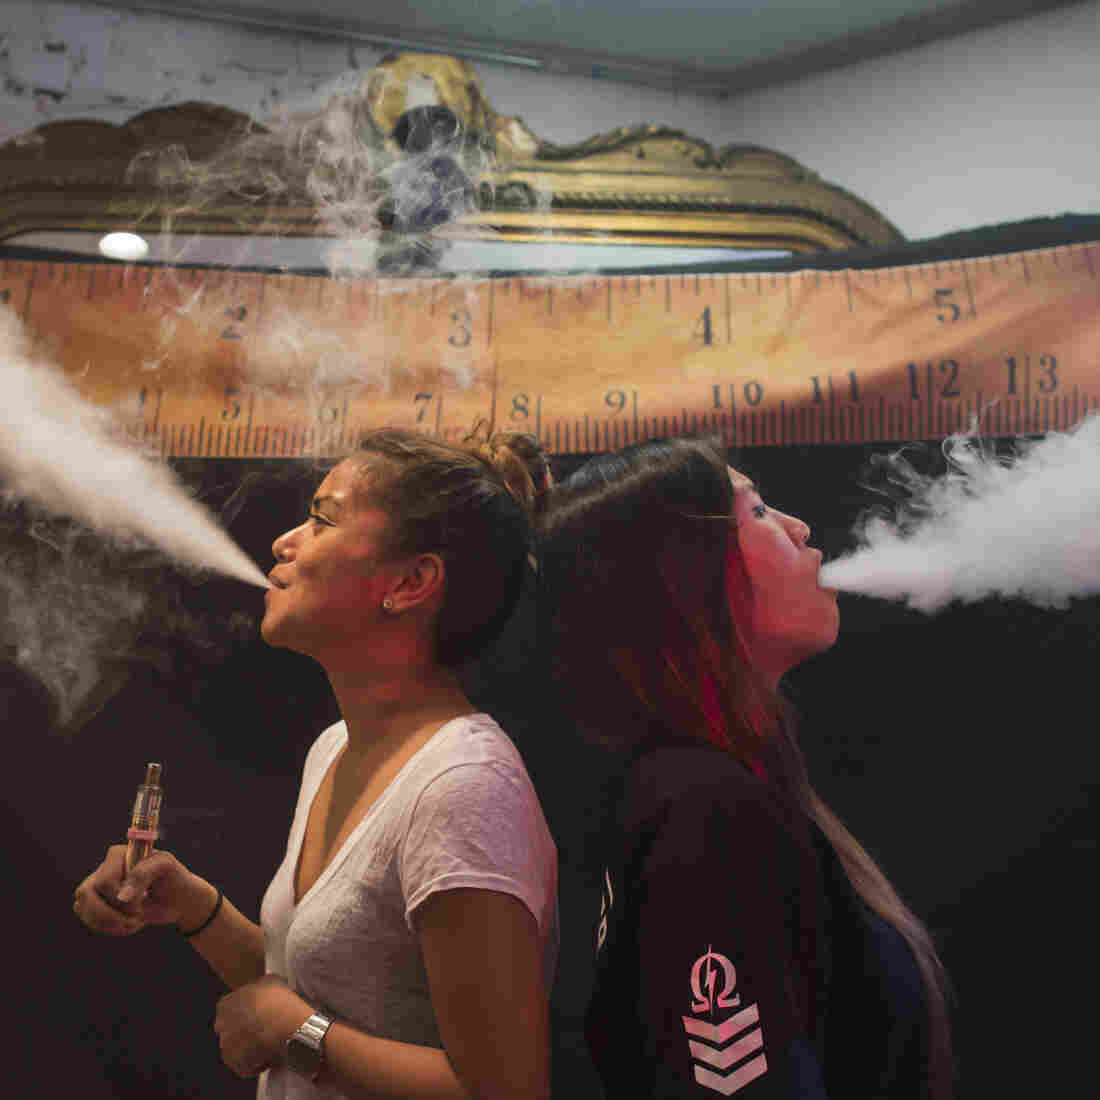 Take It In: 'Vape' Is The Oxford Dictionaries Word Of The Year